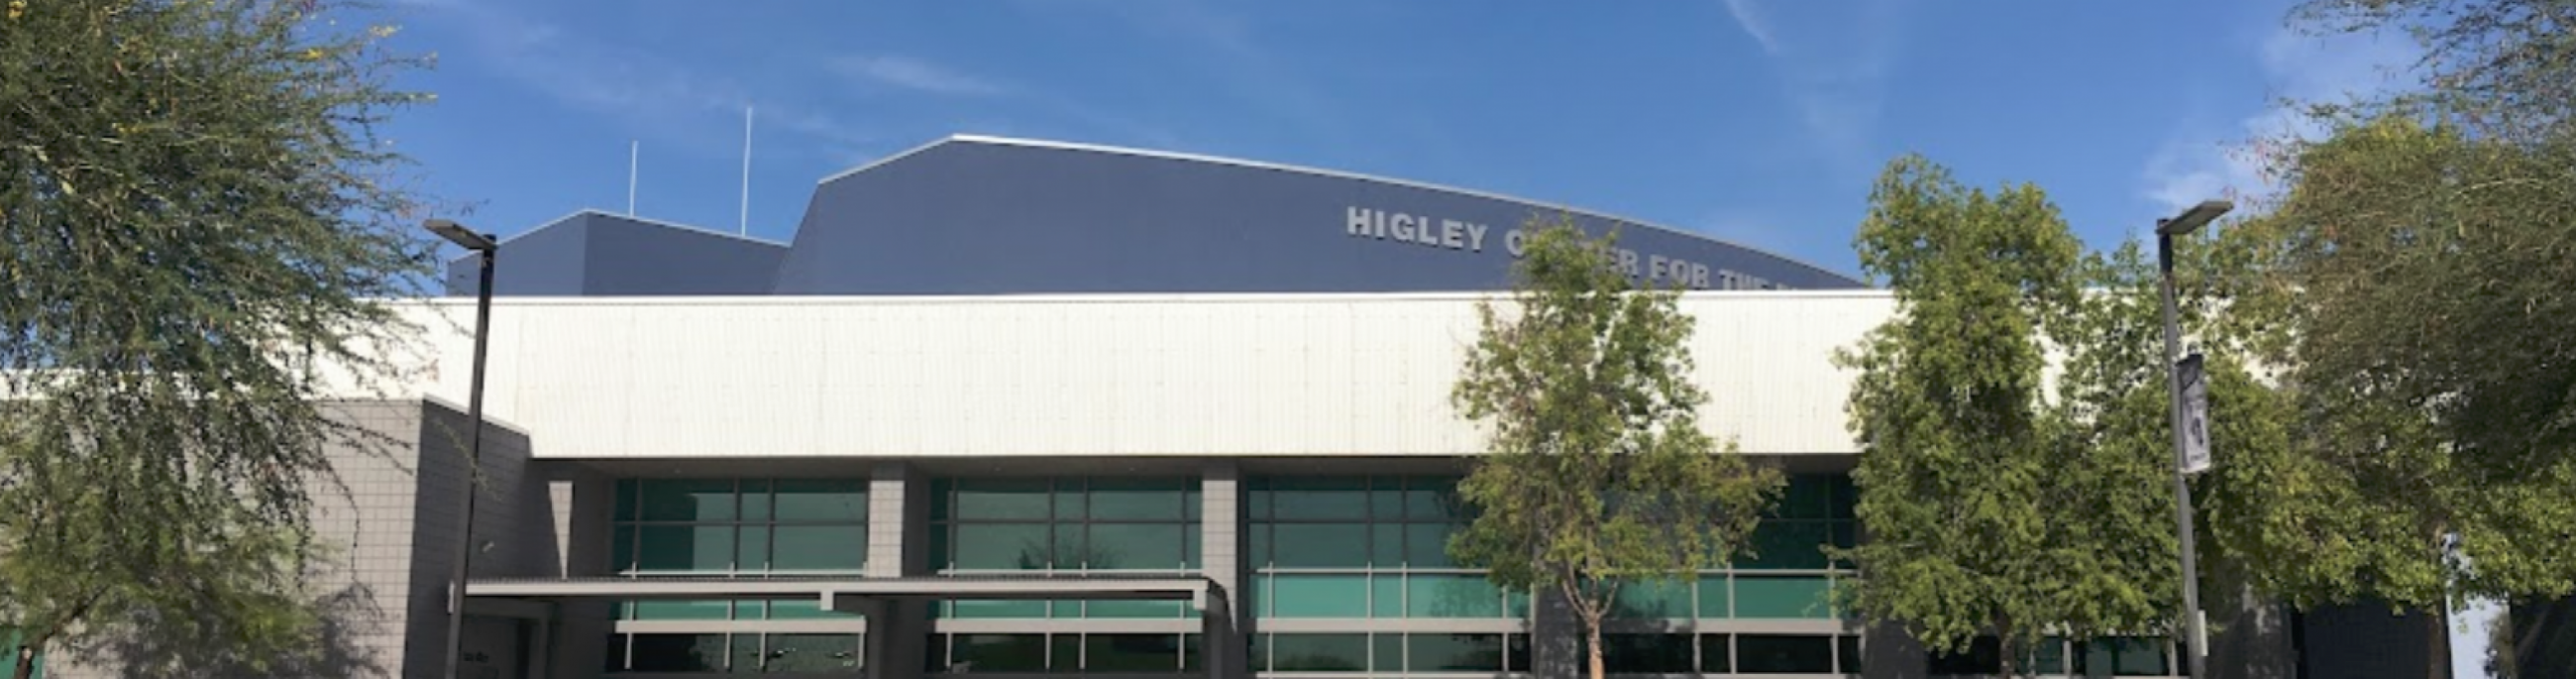 Higley Center for the Performing Arts